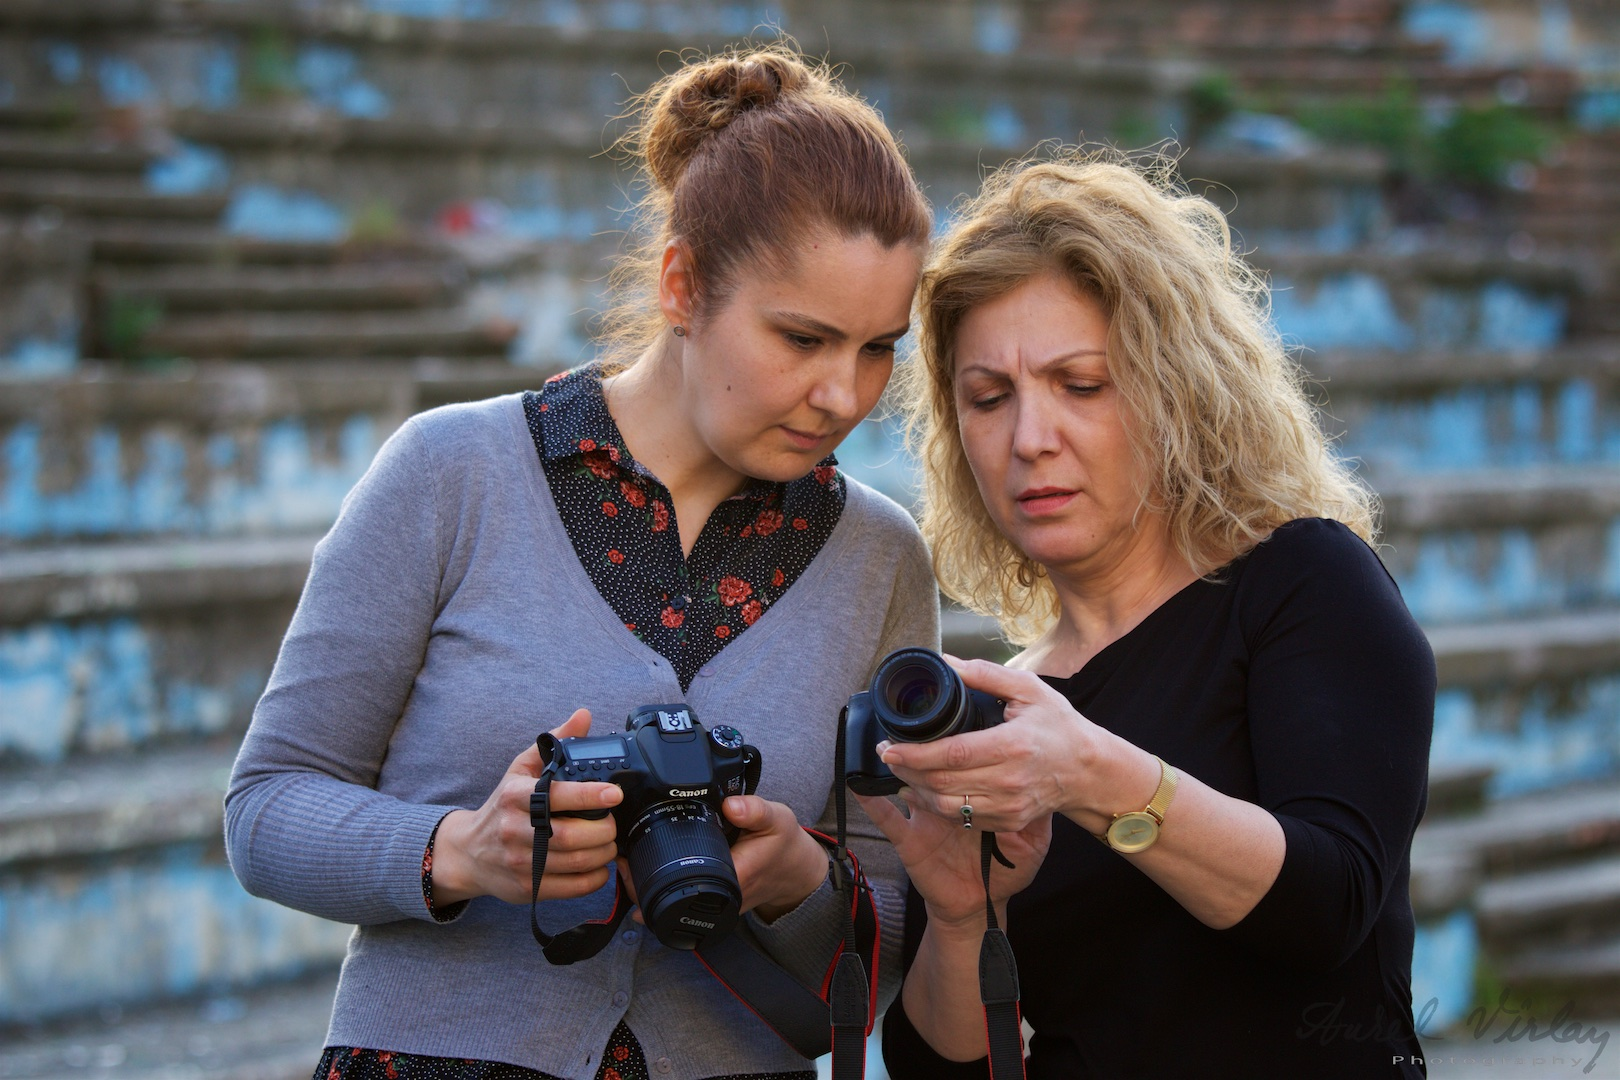 We exchange experiences and learn photography in Aurel Virlan photo class.